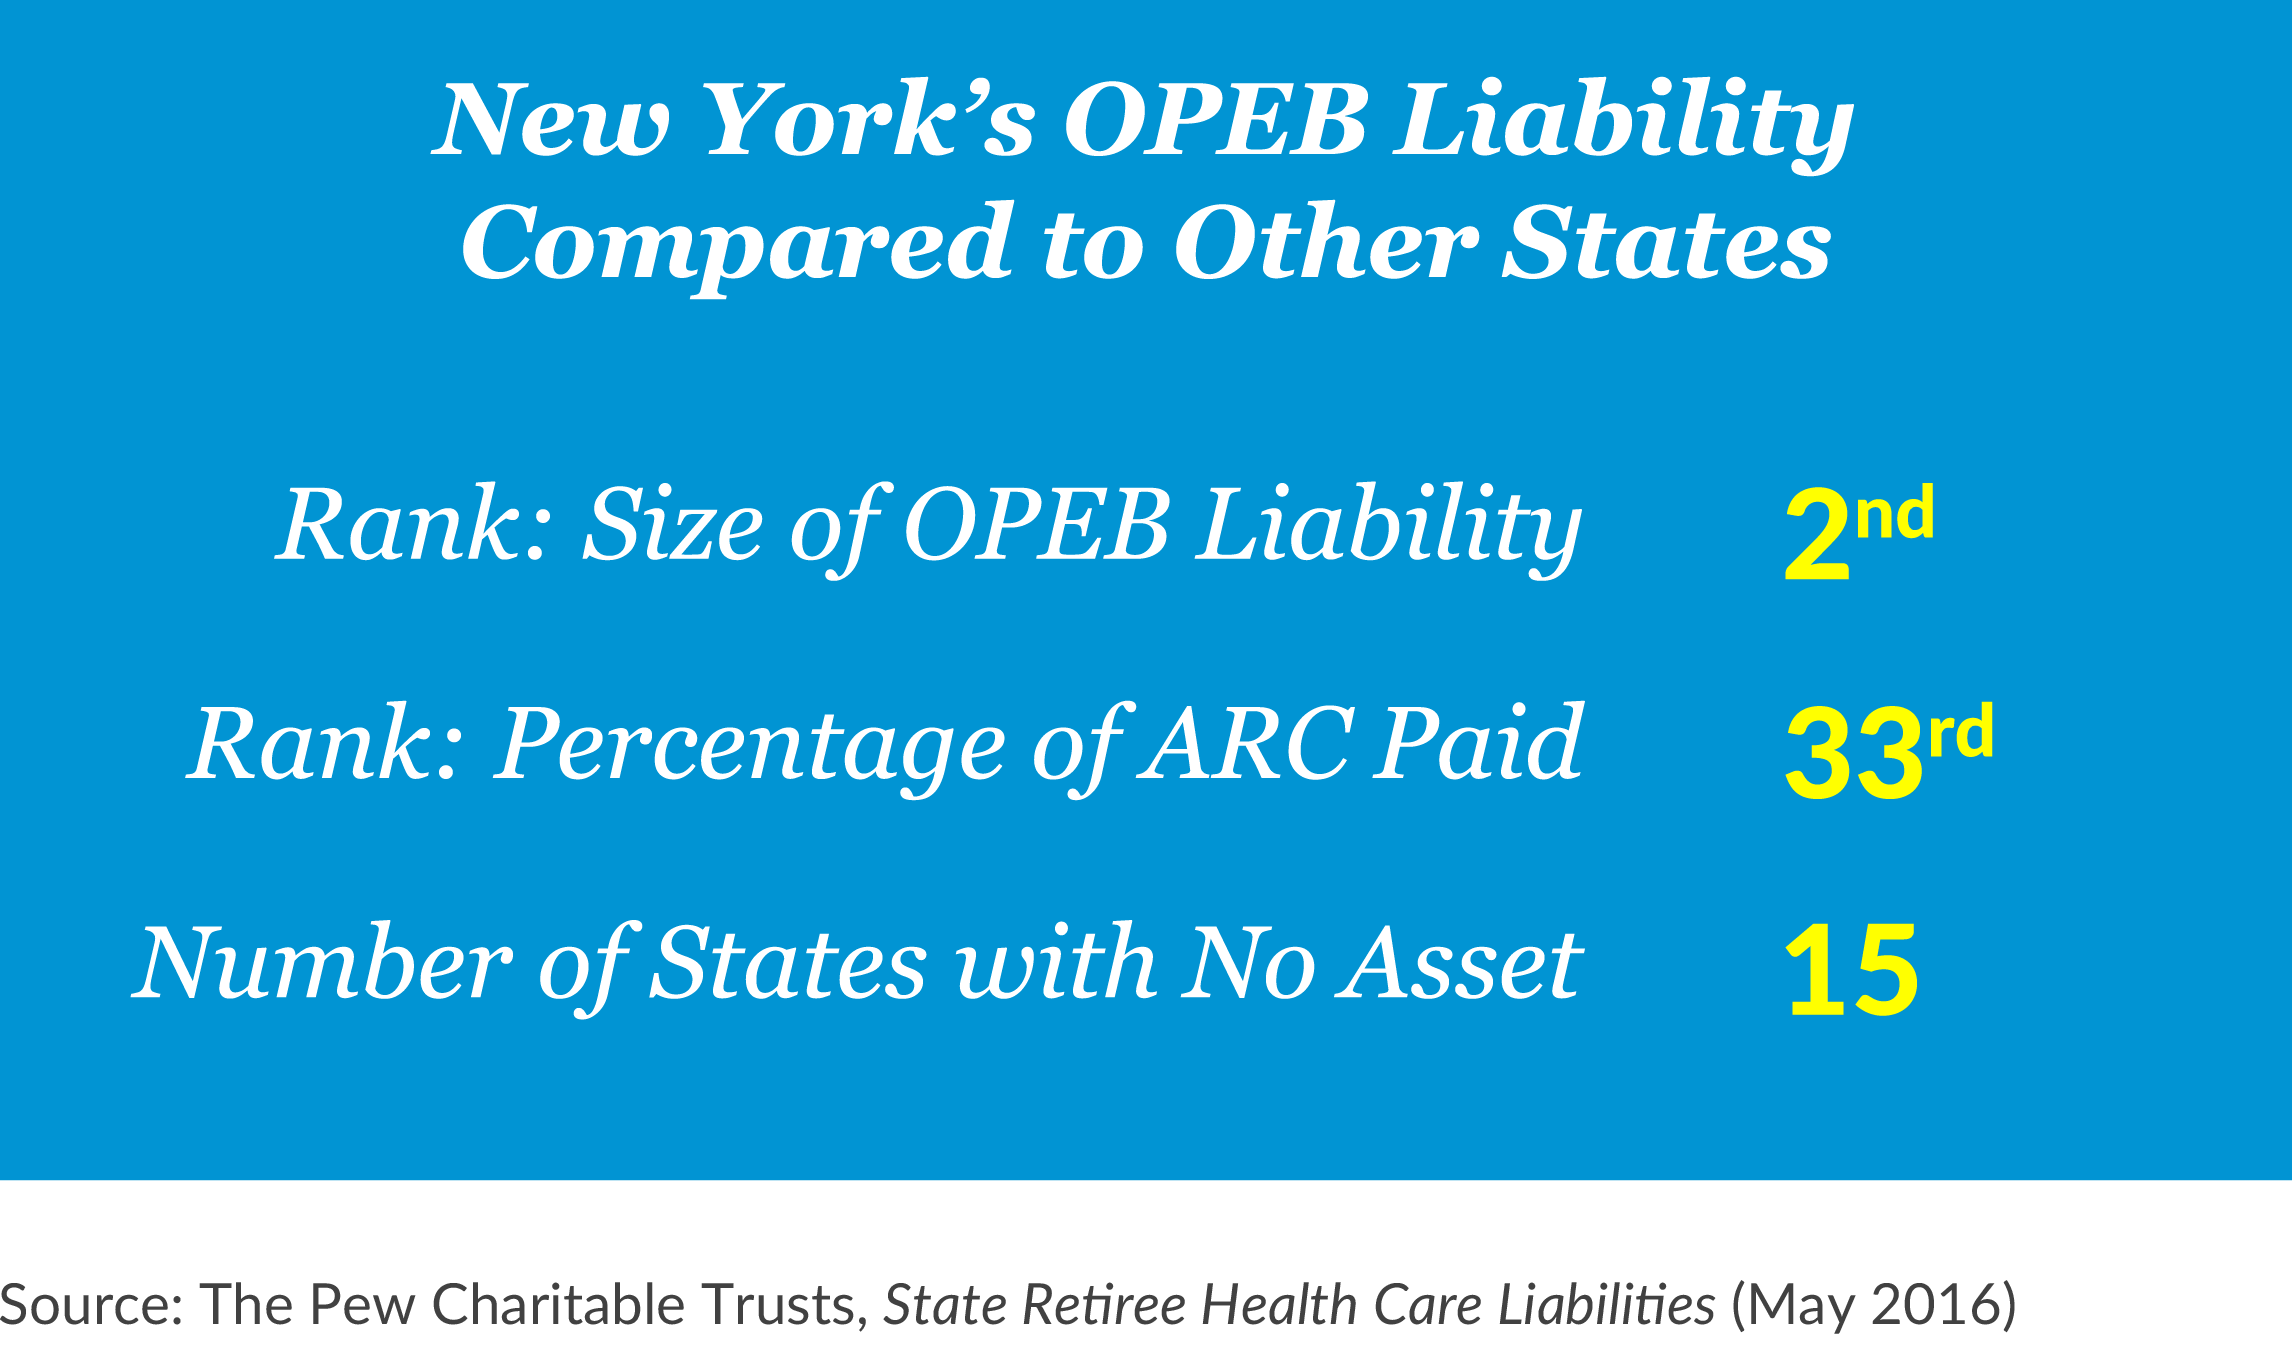 New York's OPEB Liability Compared to Other States